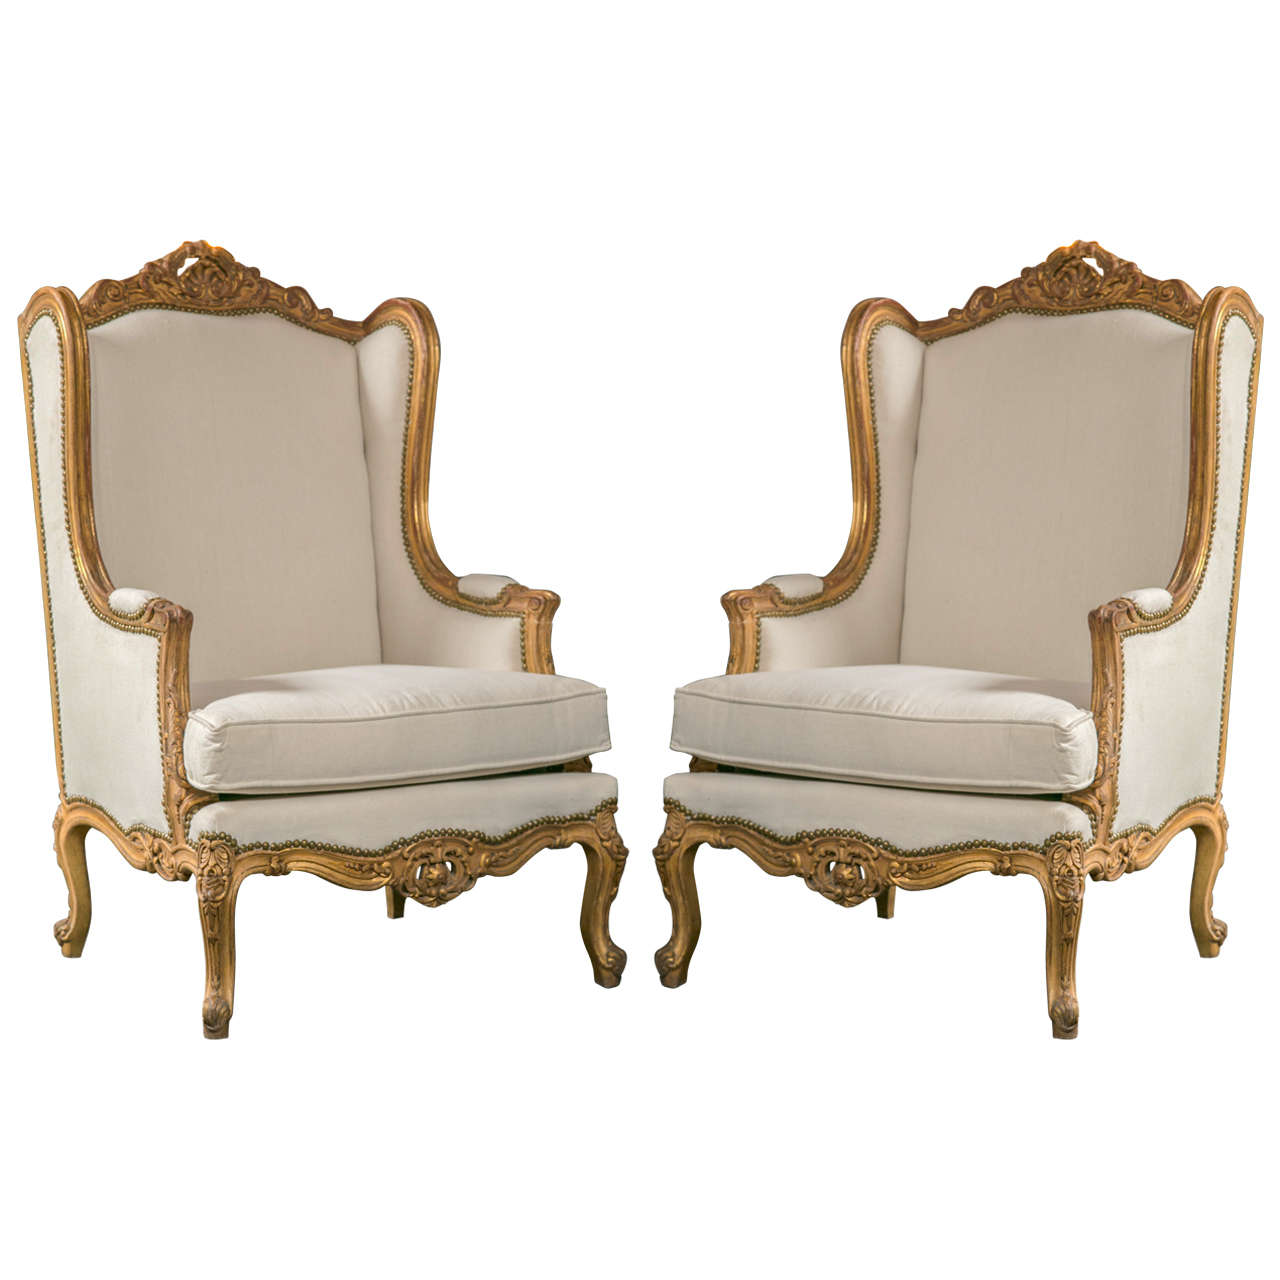 country style wingback chairs mid century rocking chair uk pair of french louis xv bergere at